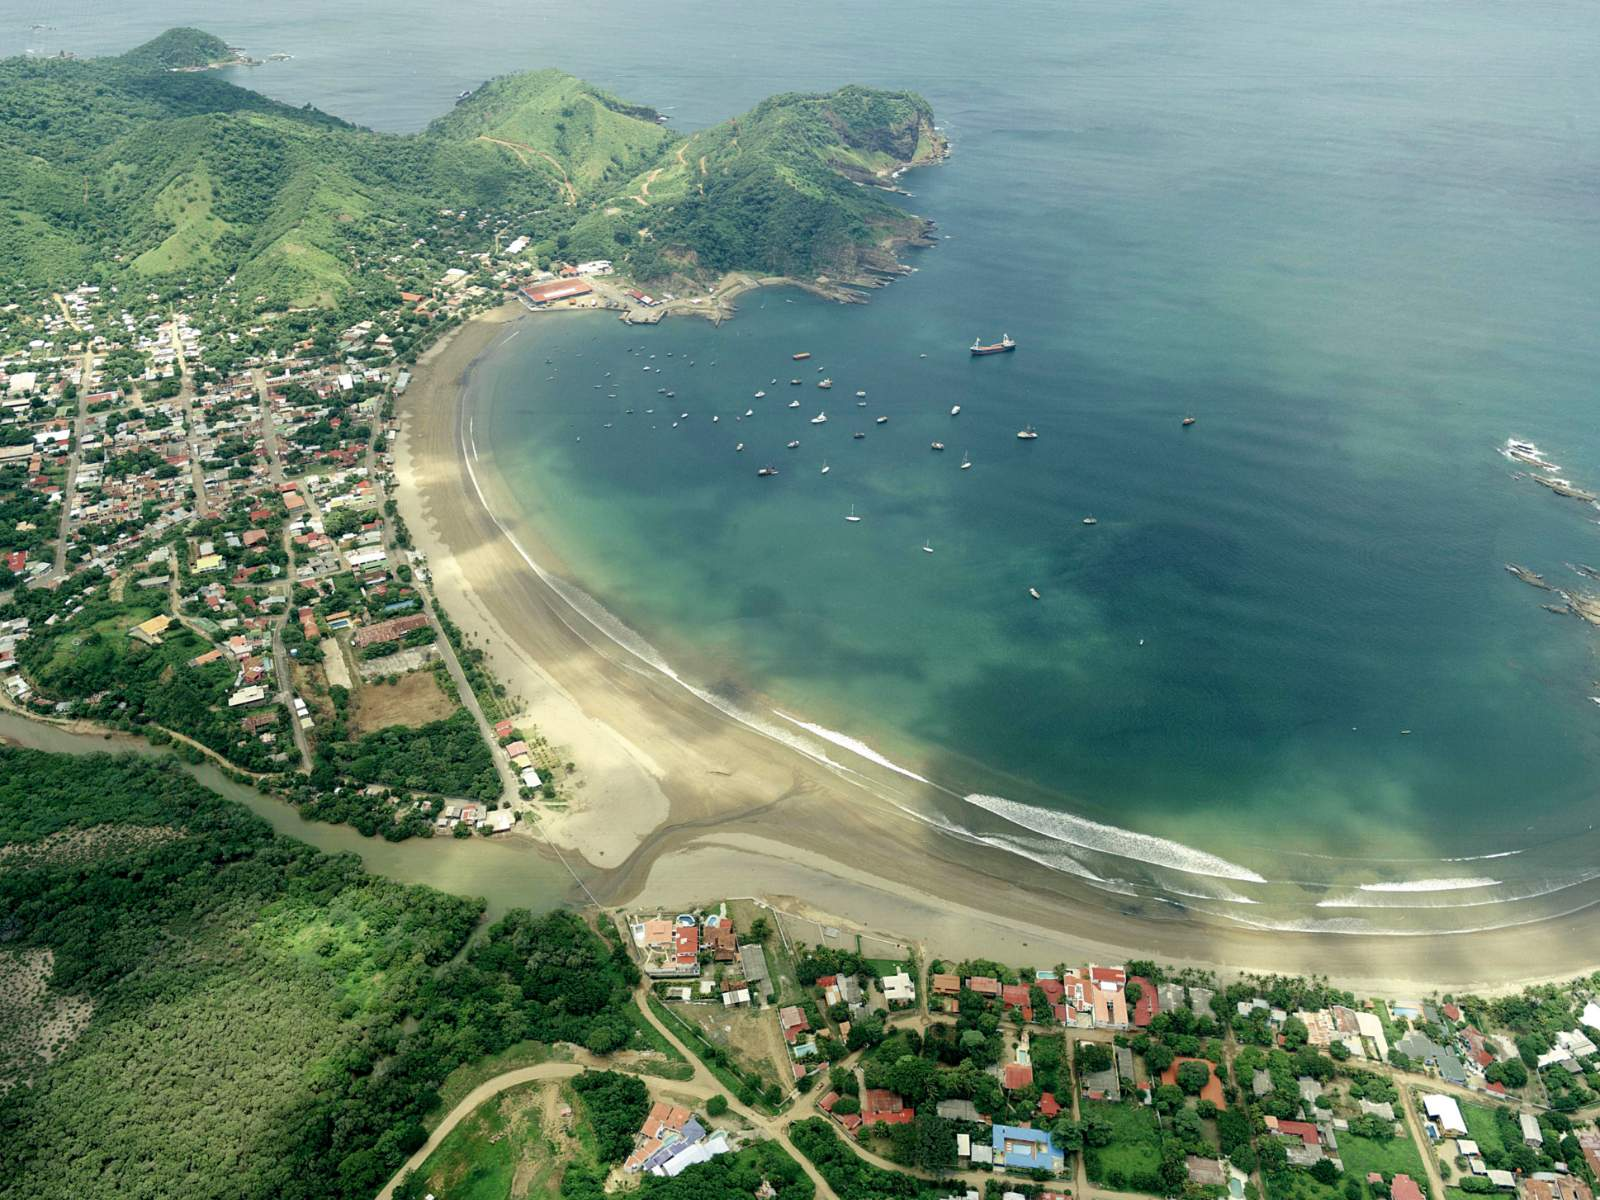 Beach and nature in San Juan del Sur